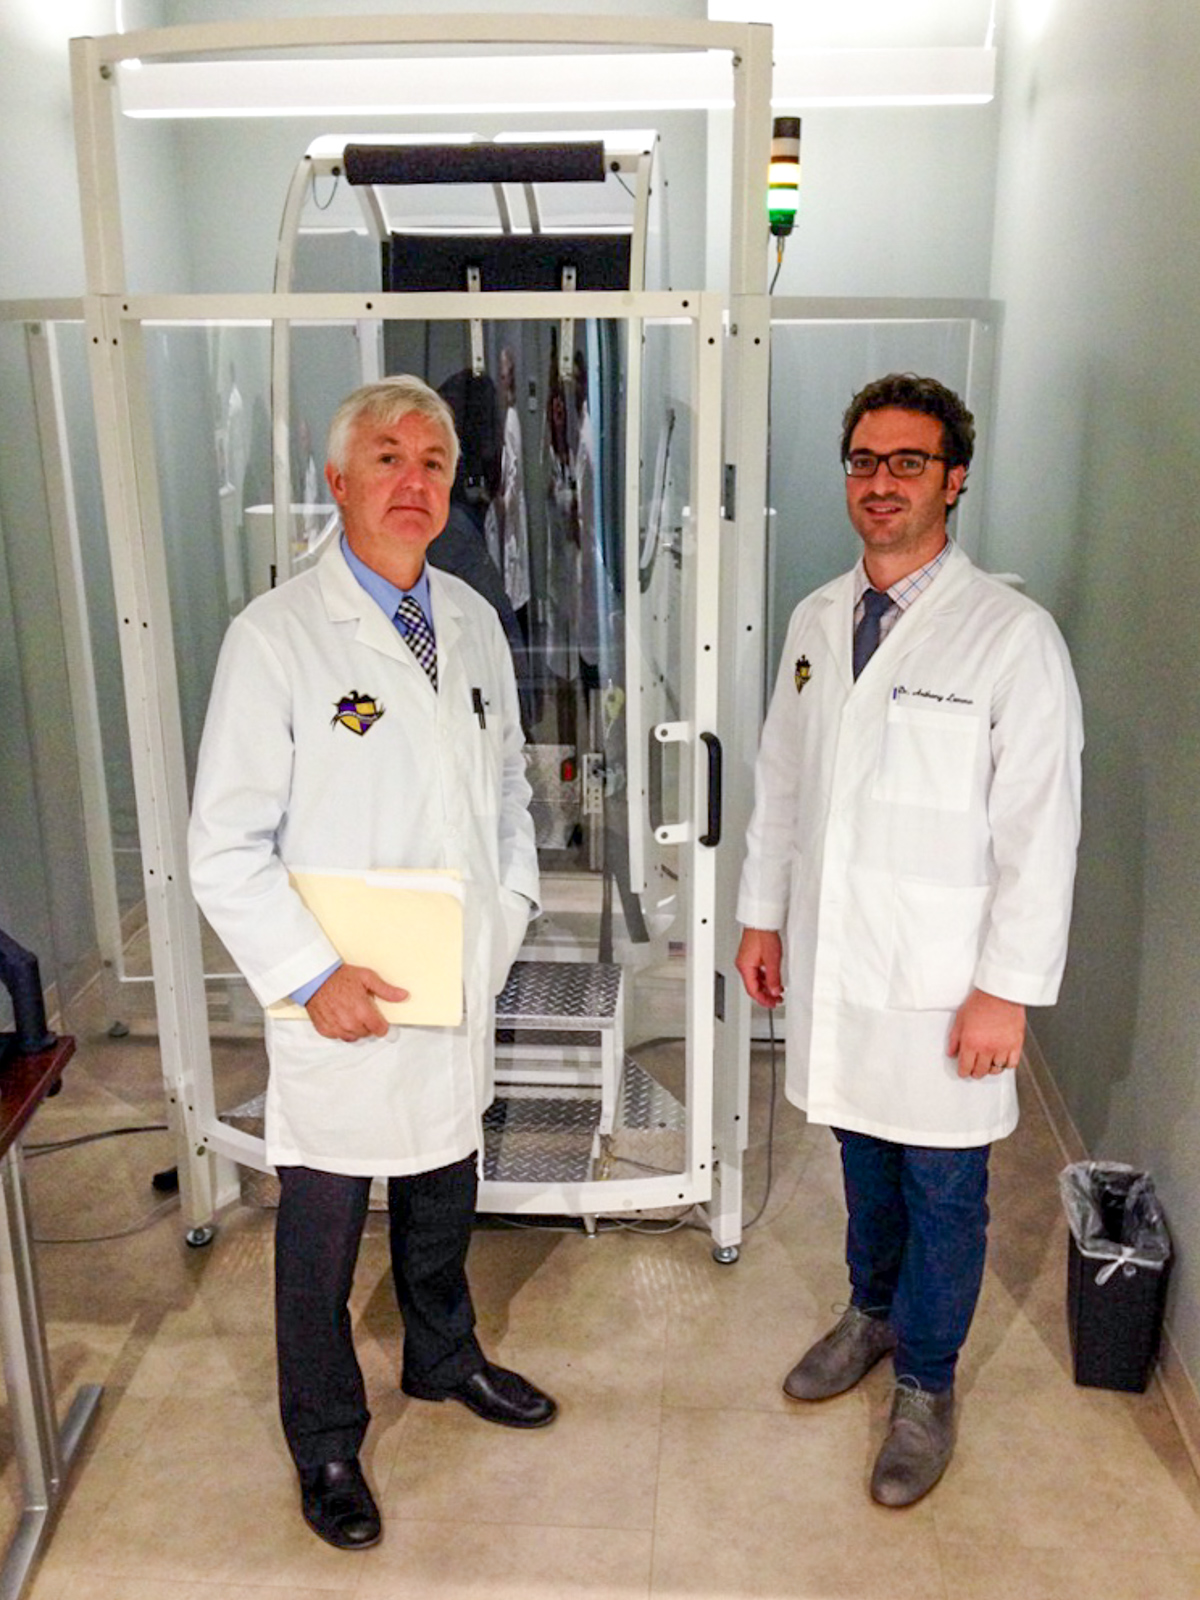 Dr. Anthony Lemmo & Dr. Ted Carrick in lab